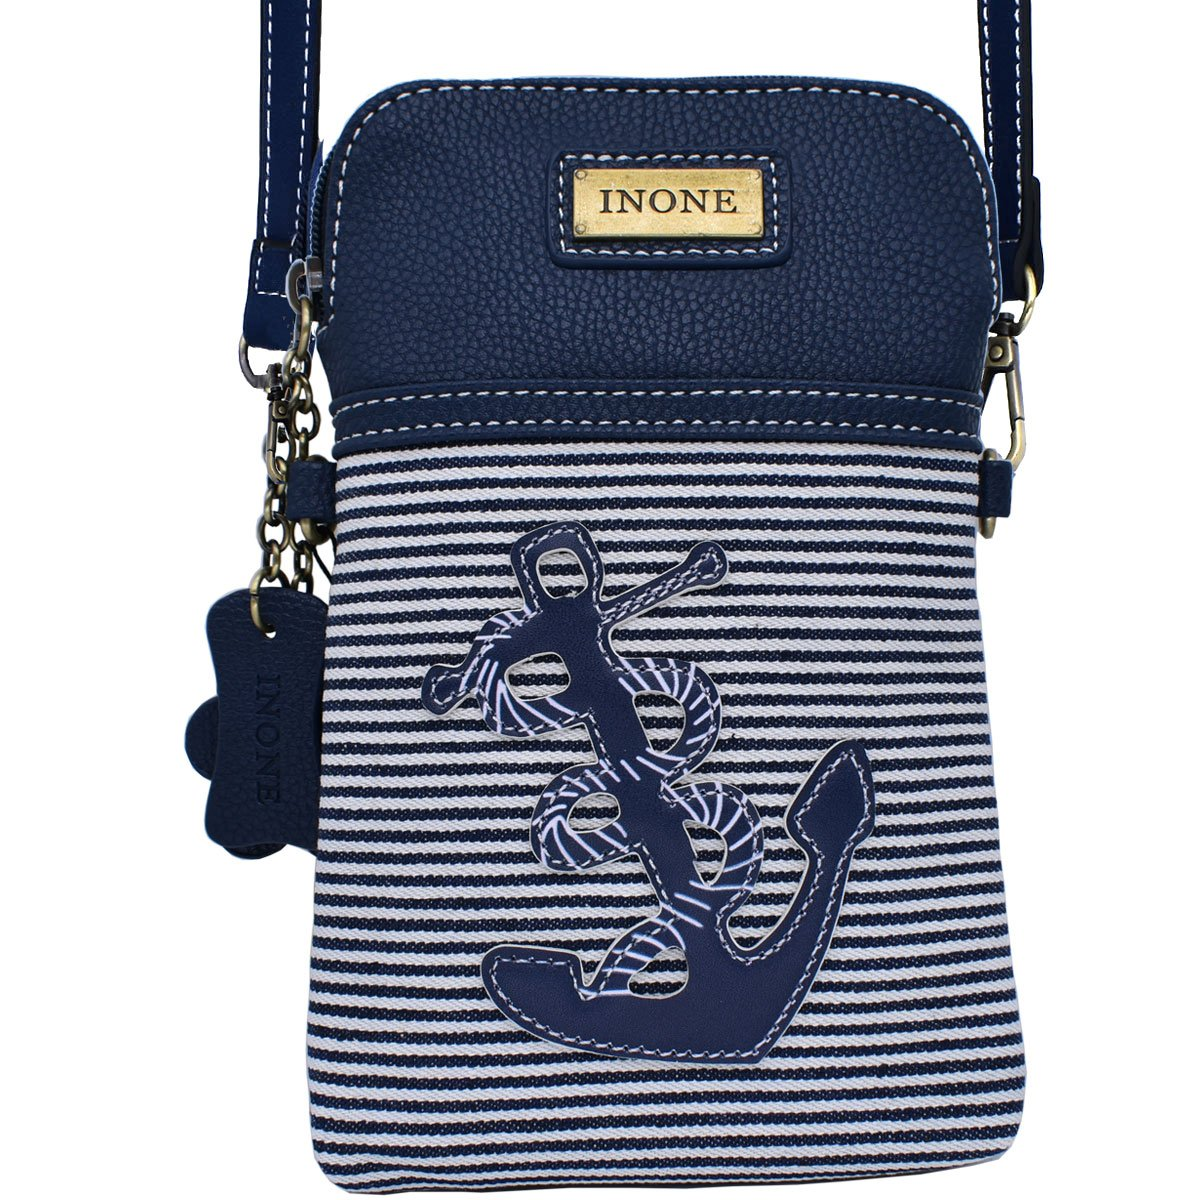 Anchor Crossbody Bag Nautical iPhone Cell Phone Purse Bag PU Leather Canvas Handbag for Smartphone Credit Card Passport Keys by inOne (Image #2)